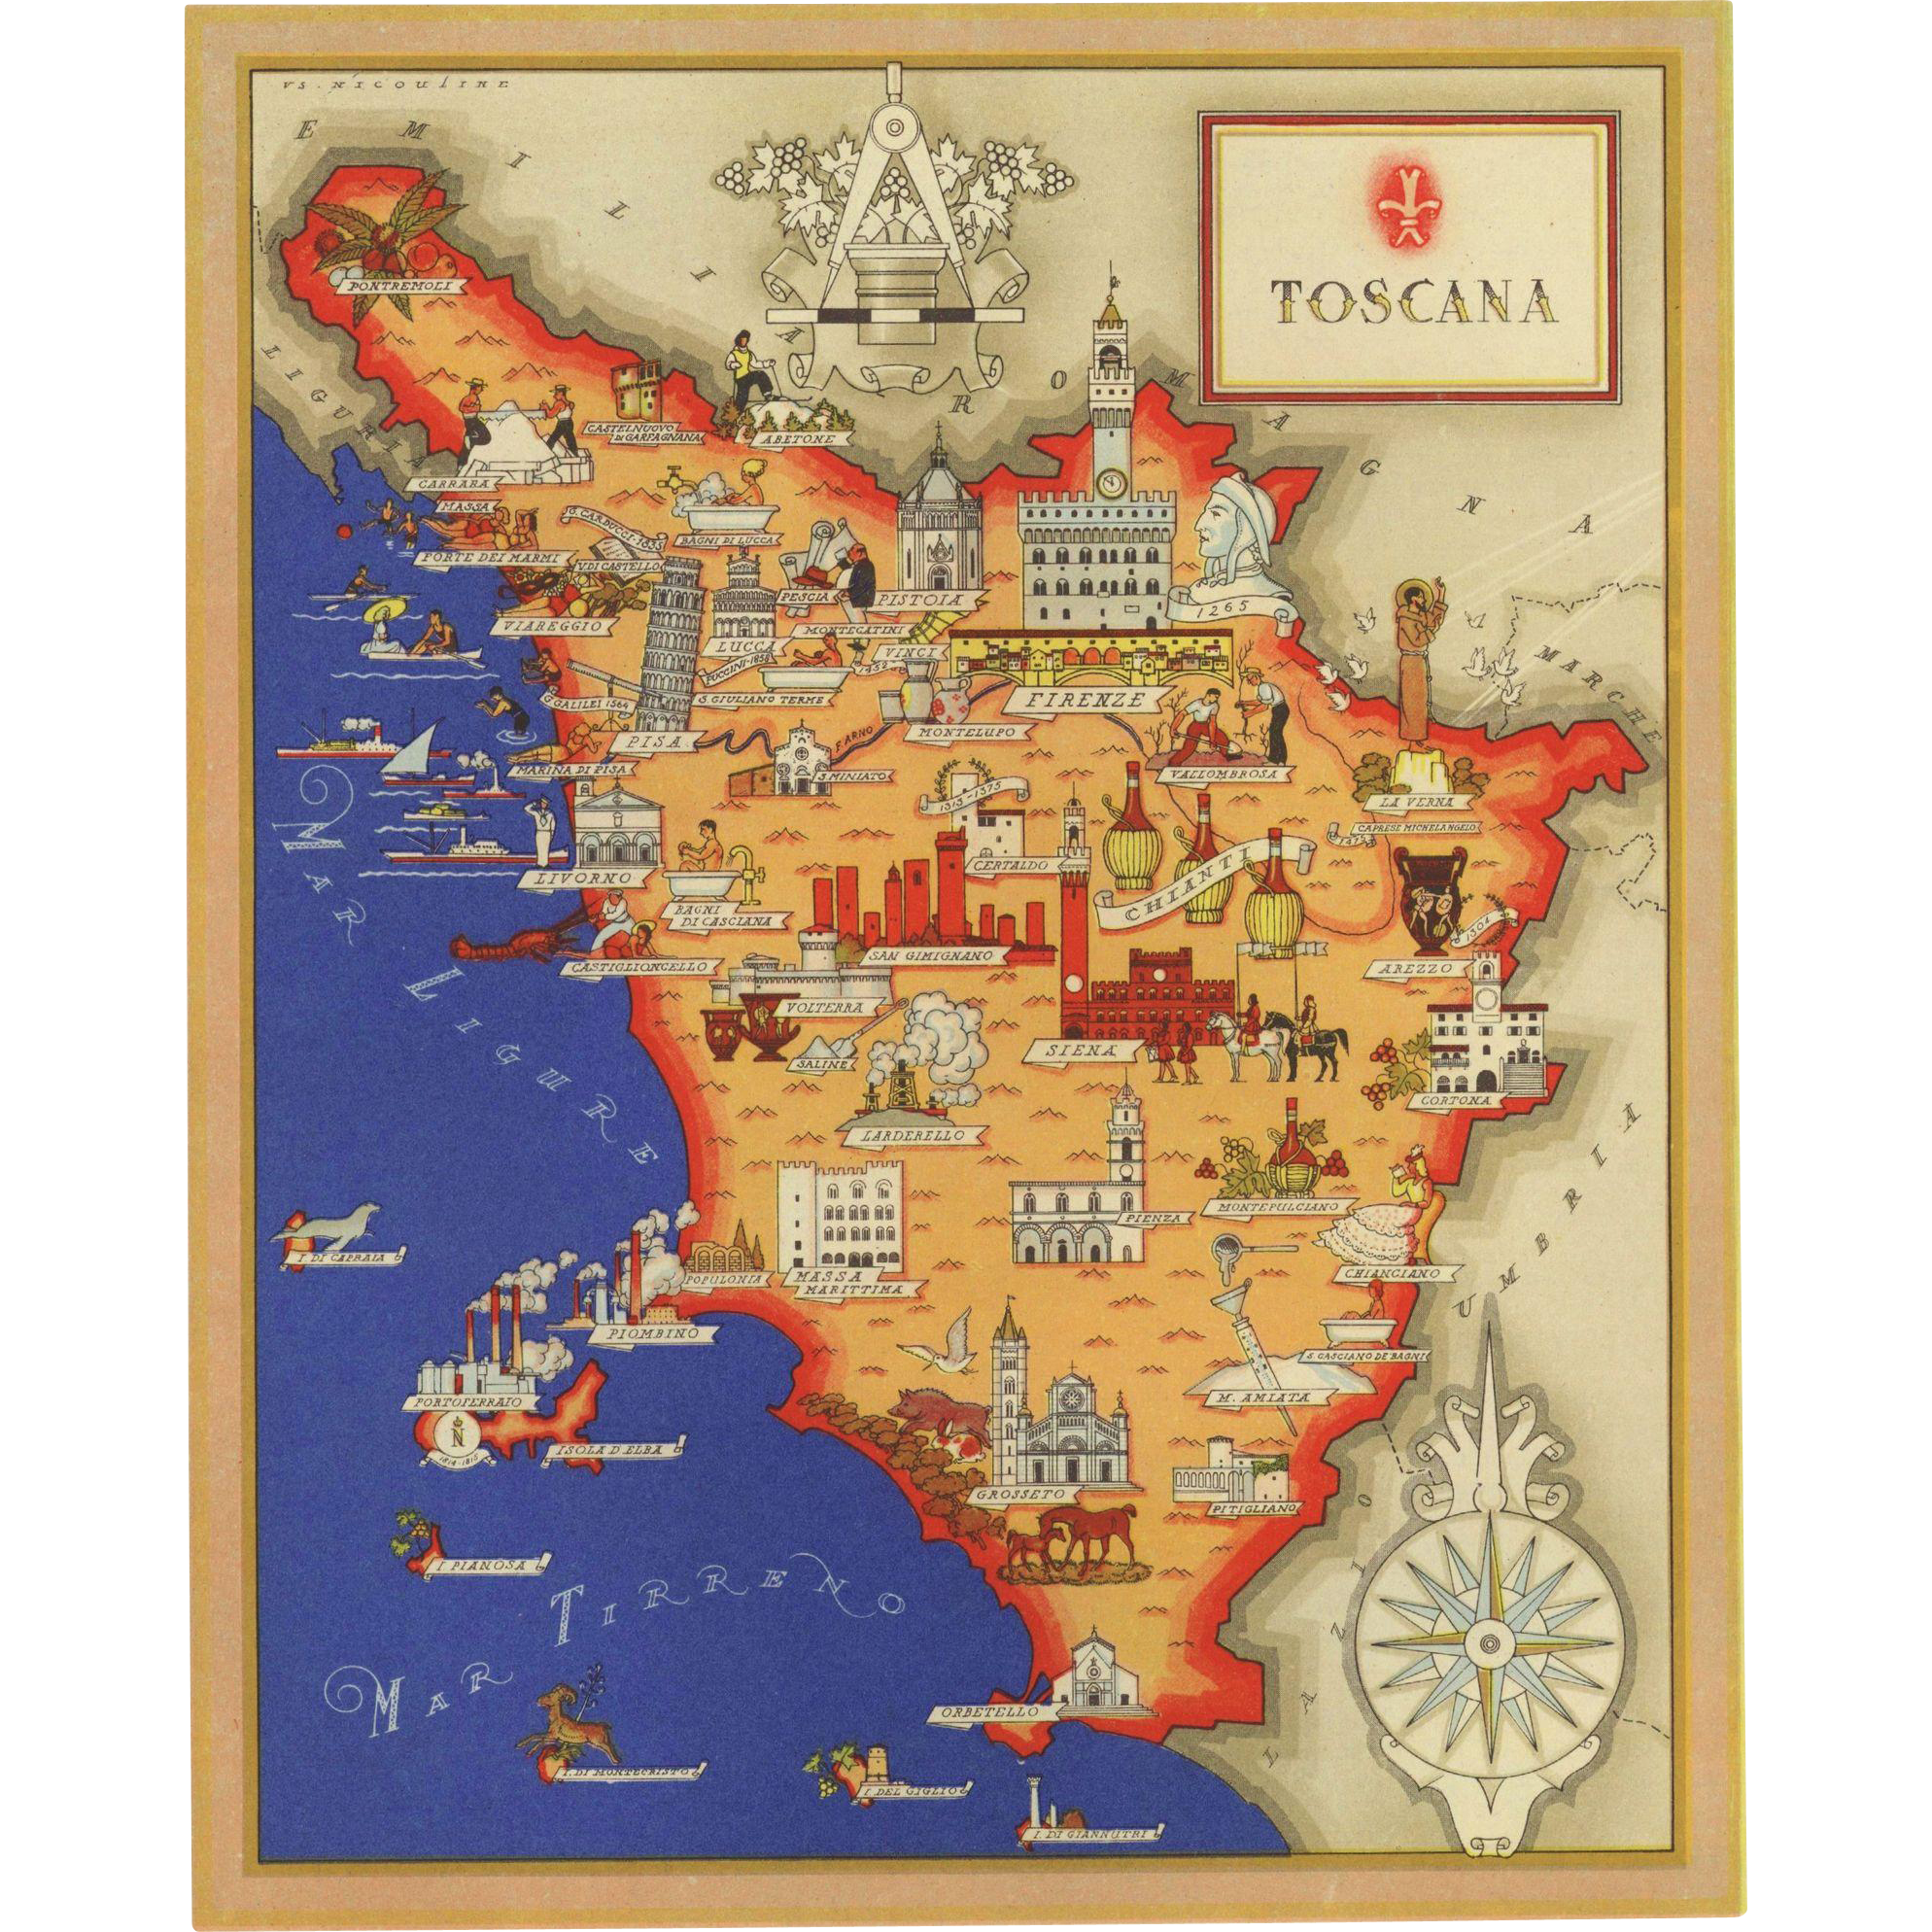 duronia italy map tuscany - photo#38